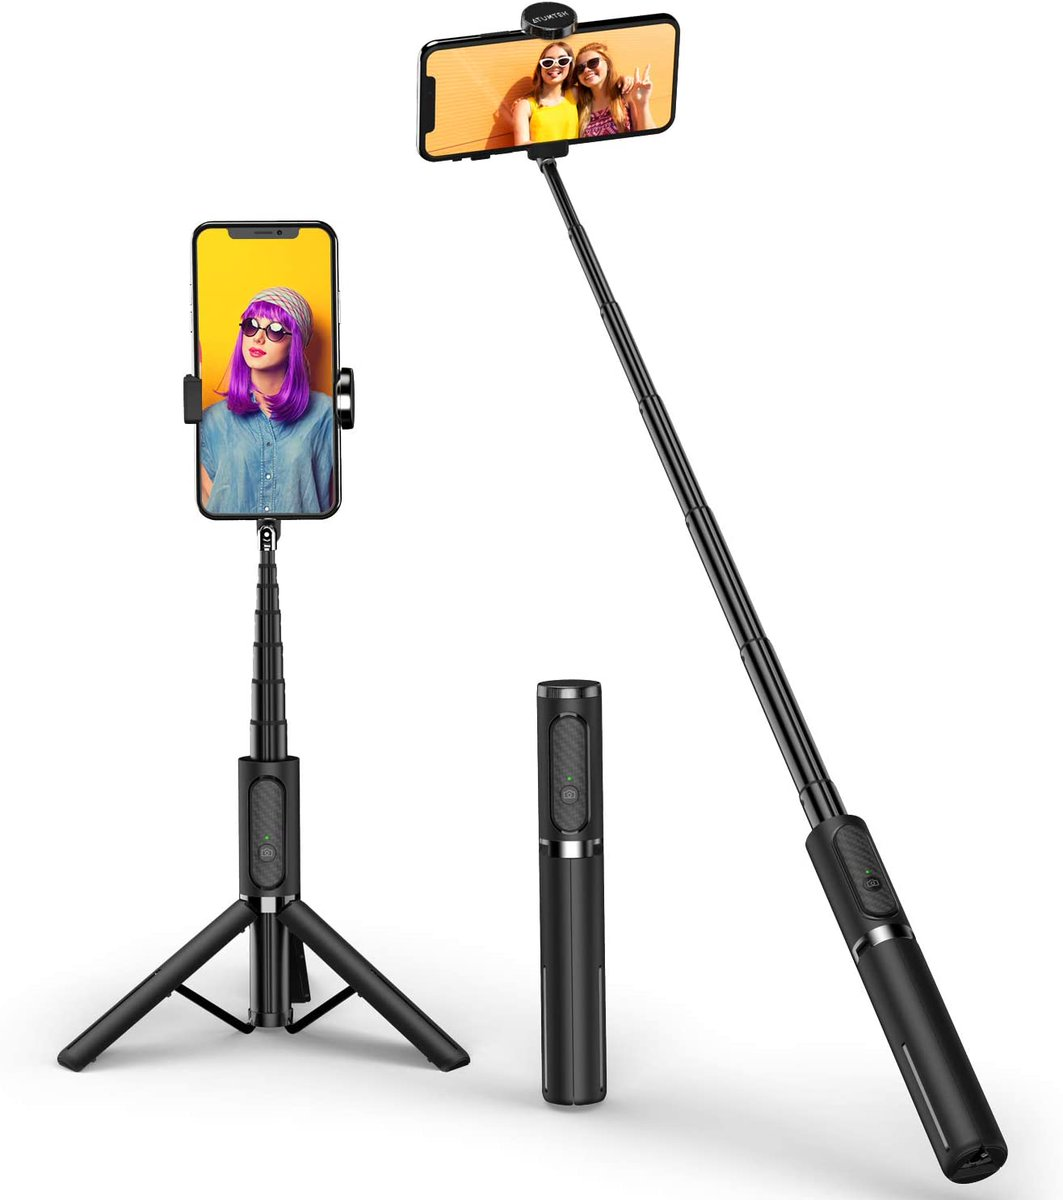 Bluetooth Selfie Stick/Tripod   -Phone holder can rotate up to 270° to support horizontal filming  -Bluetooth remote allows you to take photos as far away as 33-feet  As low as $18.19 when you use promo code ATUMTEKOFF at checkout  https://t.co/ZdC5475pXo  #ad #selfie #stick https://t.co/fg4p5Q4eRE